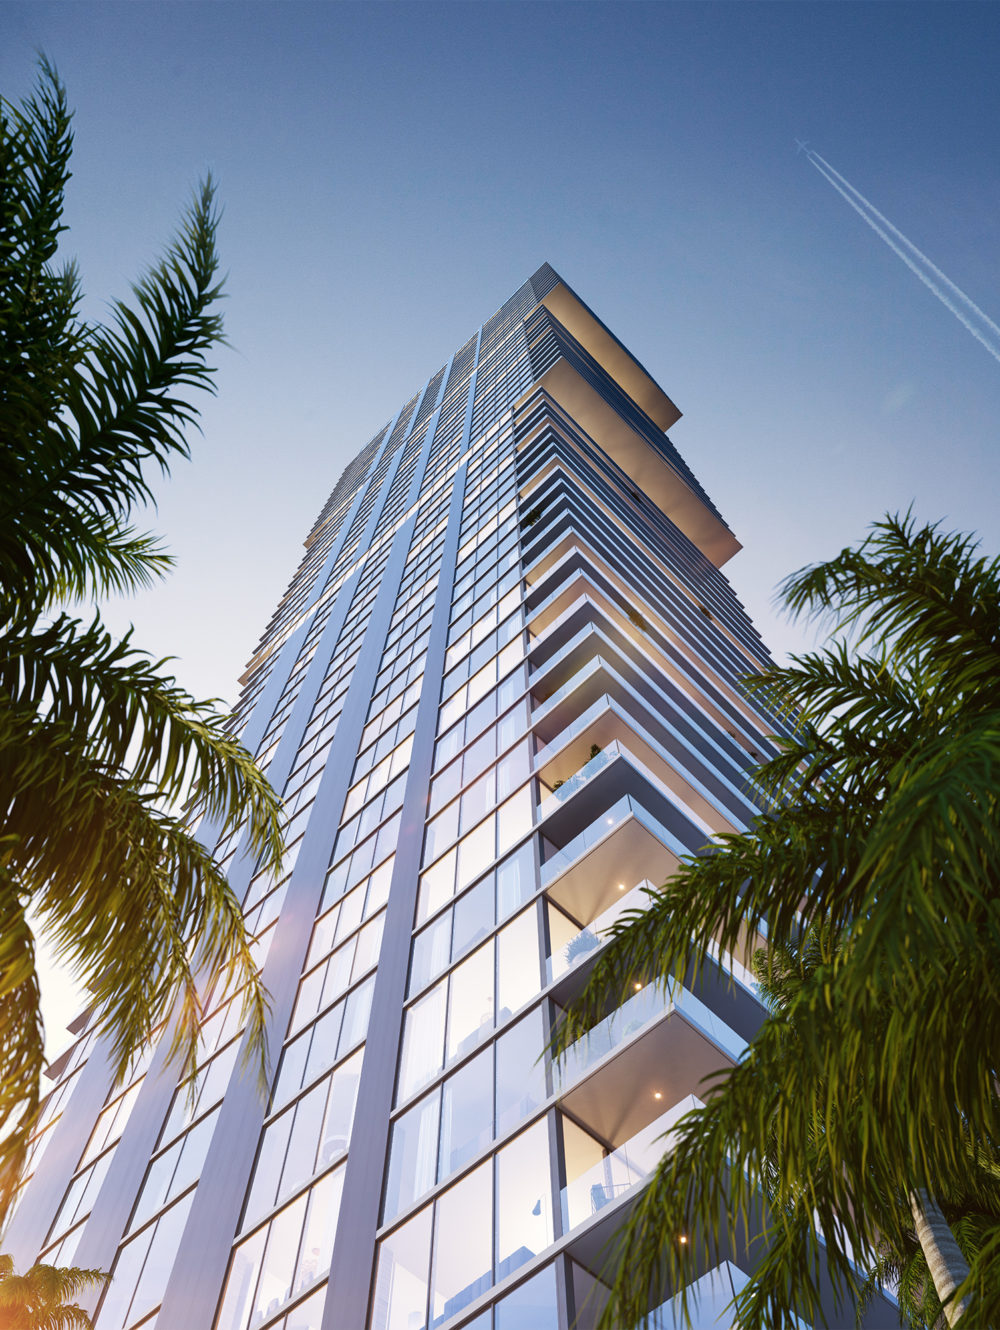 Exterior ground view of Elysee condominiums with view of Biscayne Bay. Includes palm tree and the sun illuminating the side.